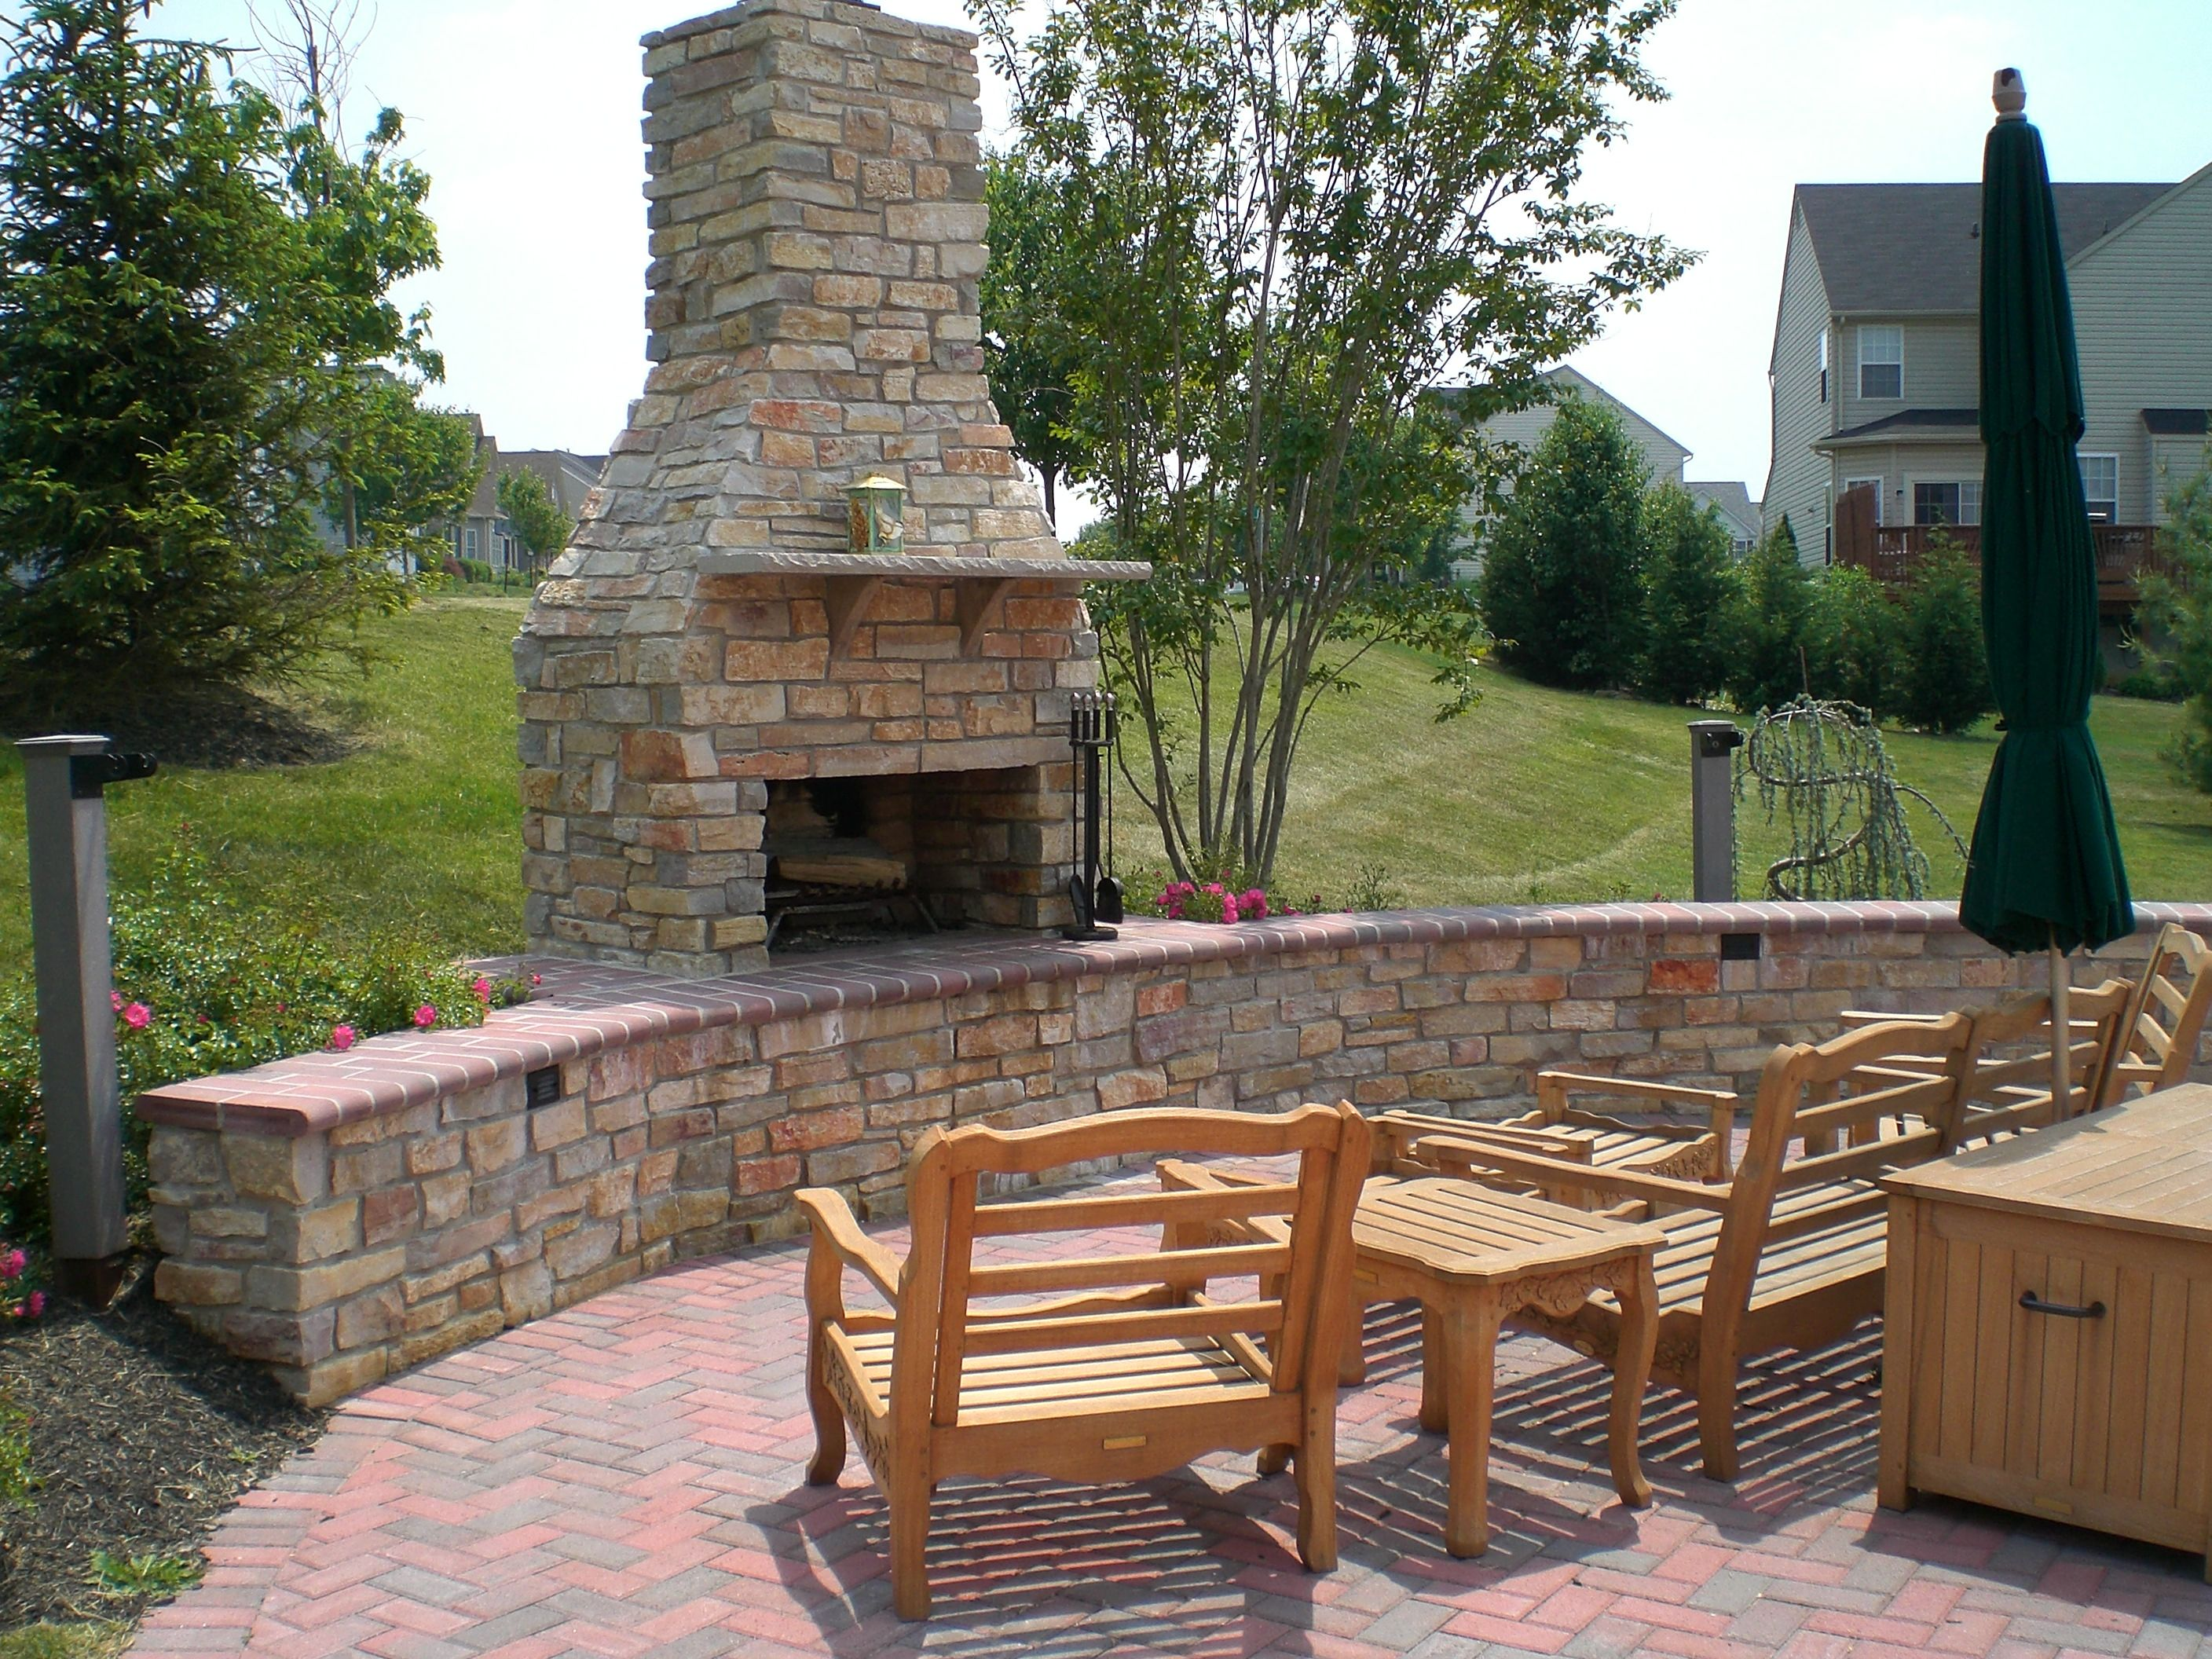 outdoor patio and fire place ready for use another quality job